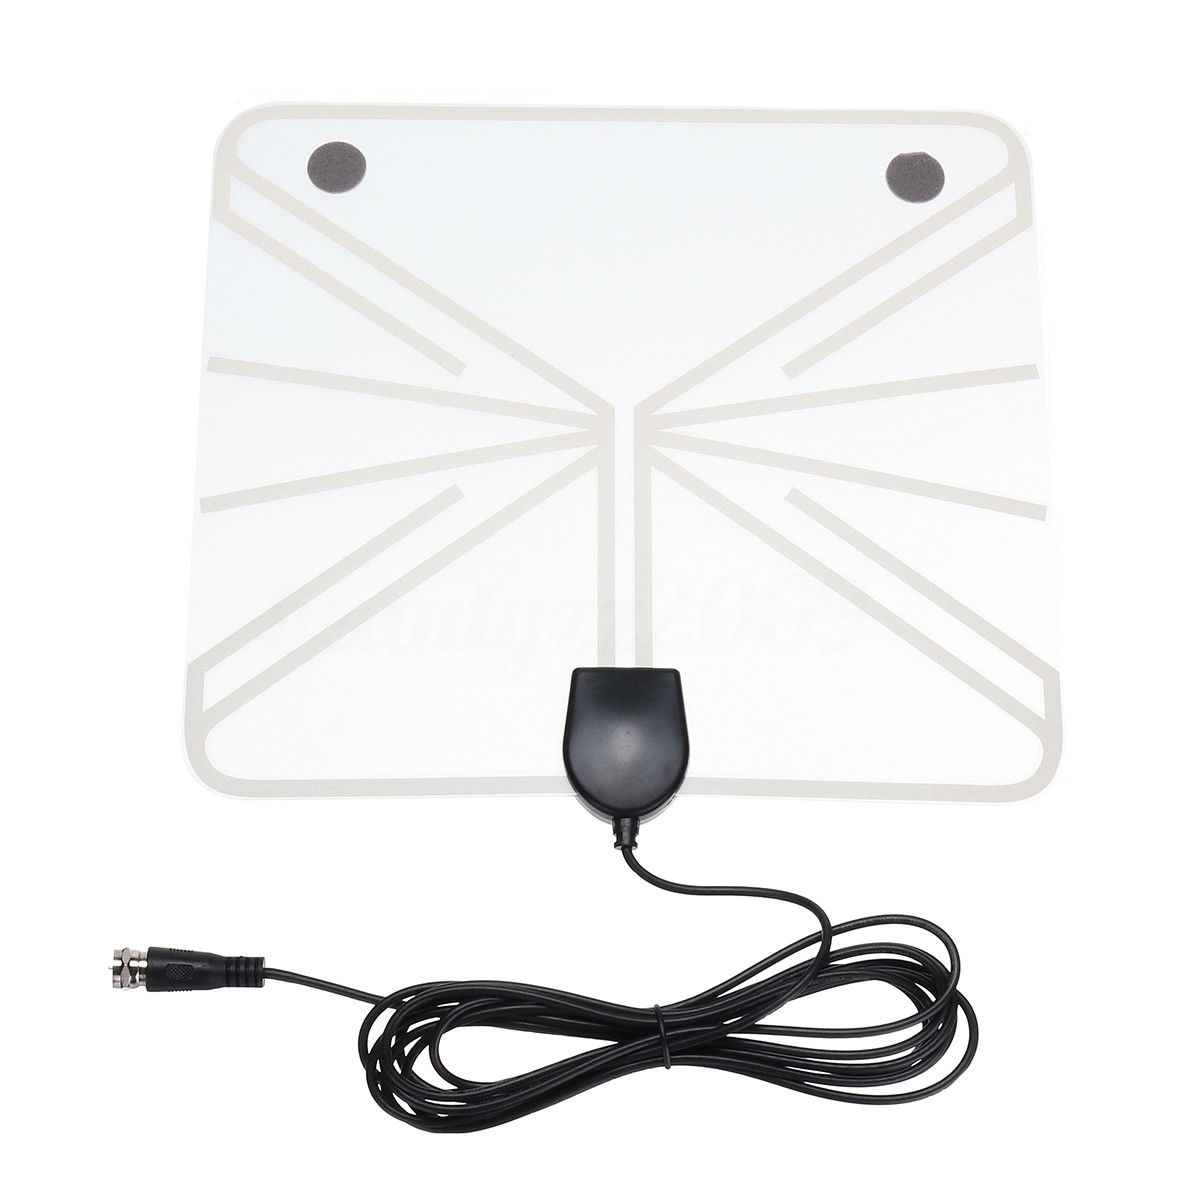 Usb Indoor Digital Tv Antenna 50 100 Miles Range Signal P Amplified Hdtv In Tv Antenna From